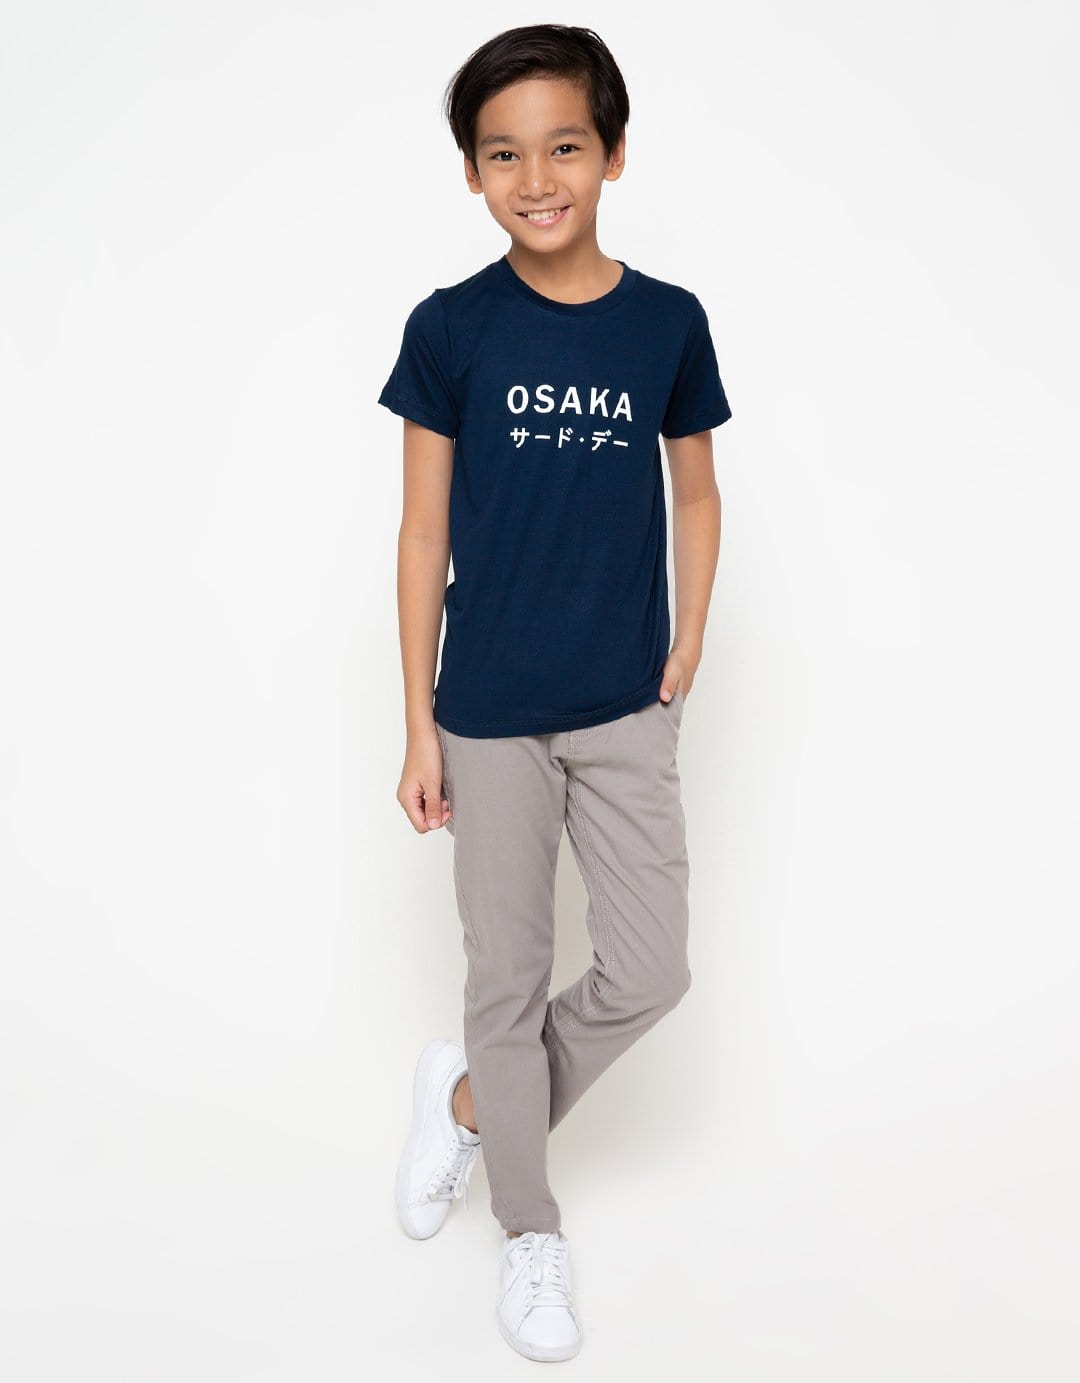 BT165 thirdday kaos anak osaka katakana dateng navy